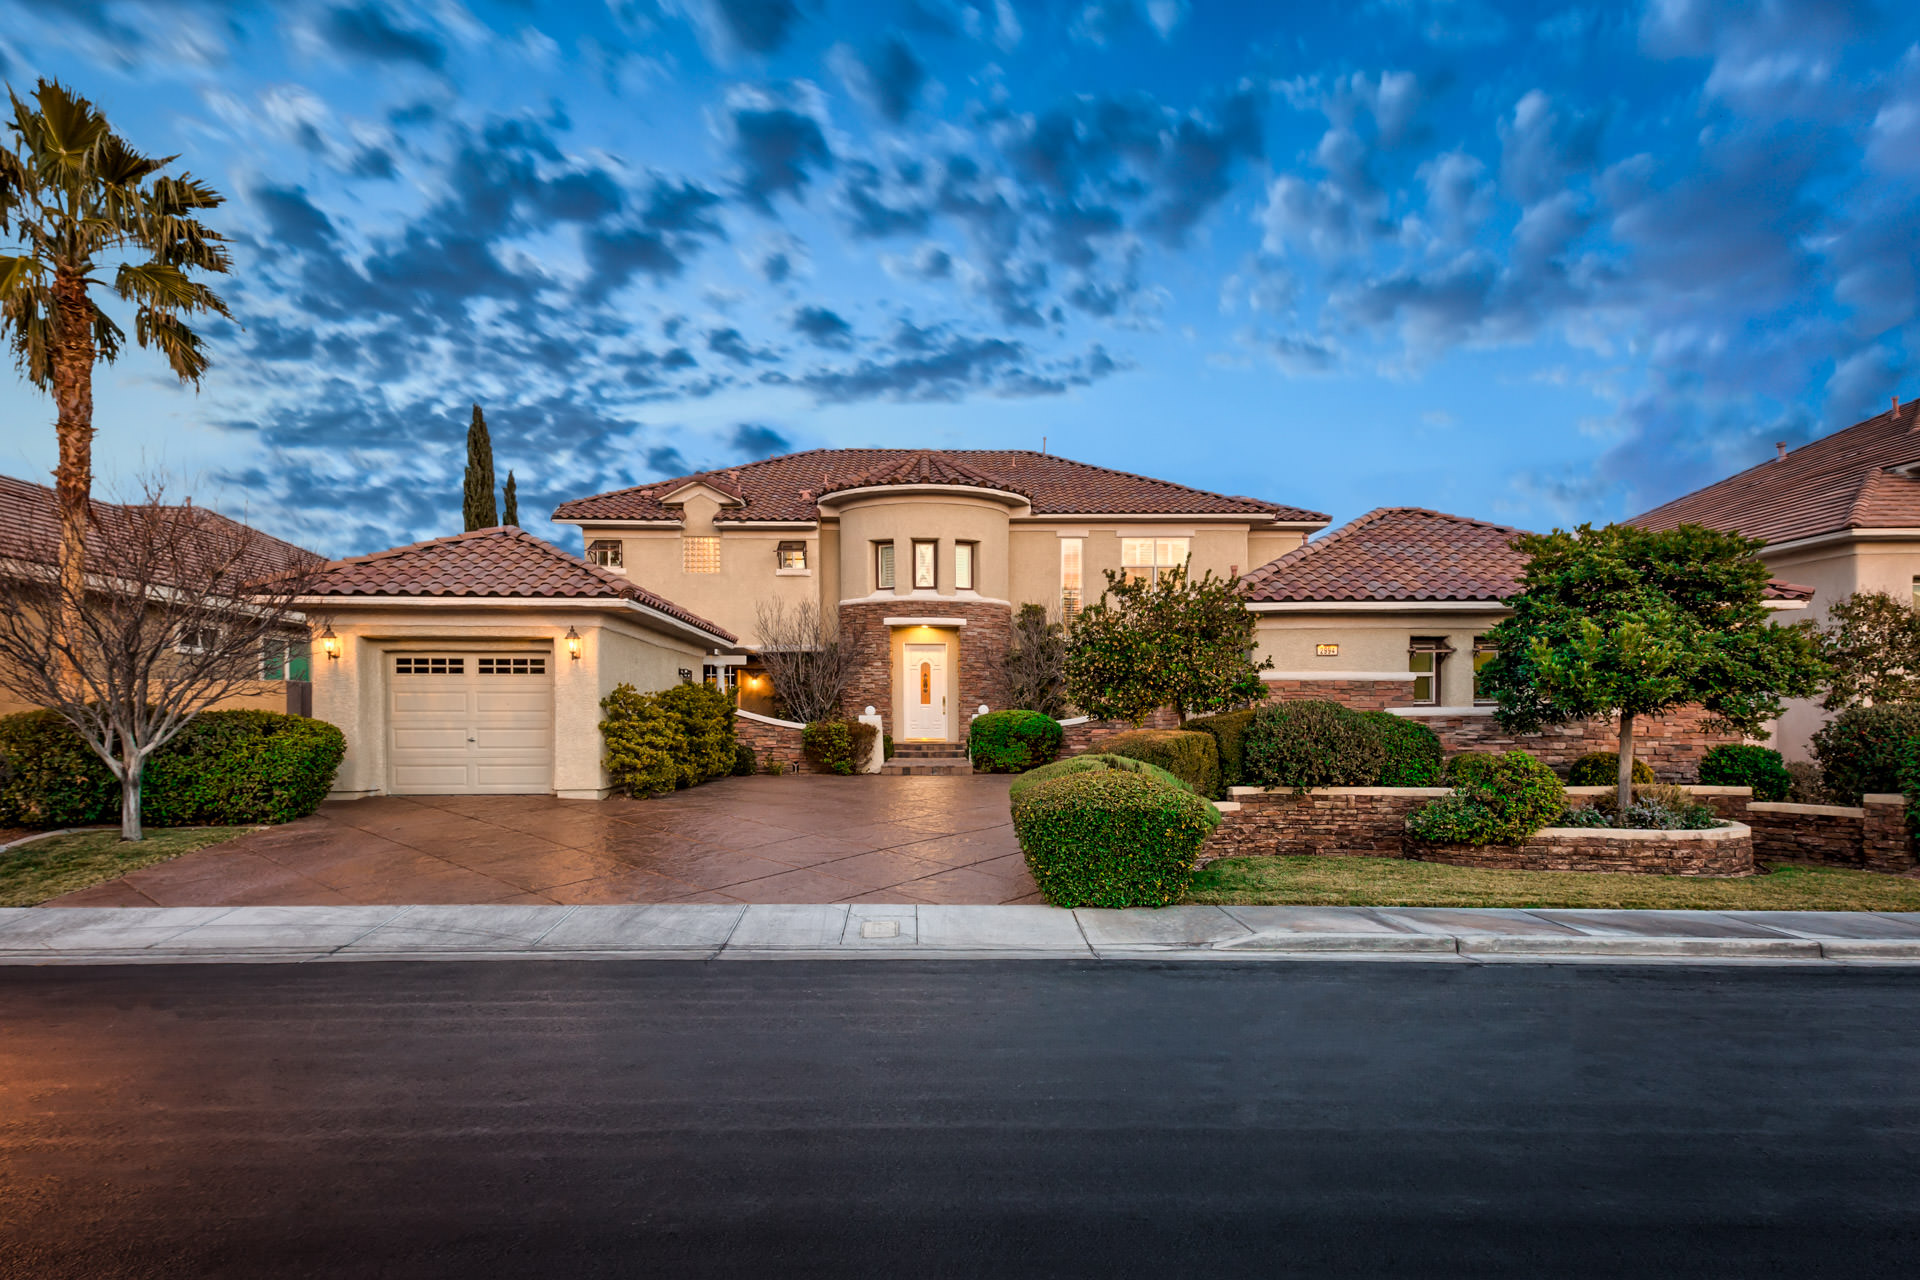 Million Dollar Homes In Las Vegas For Sale Up To 1m